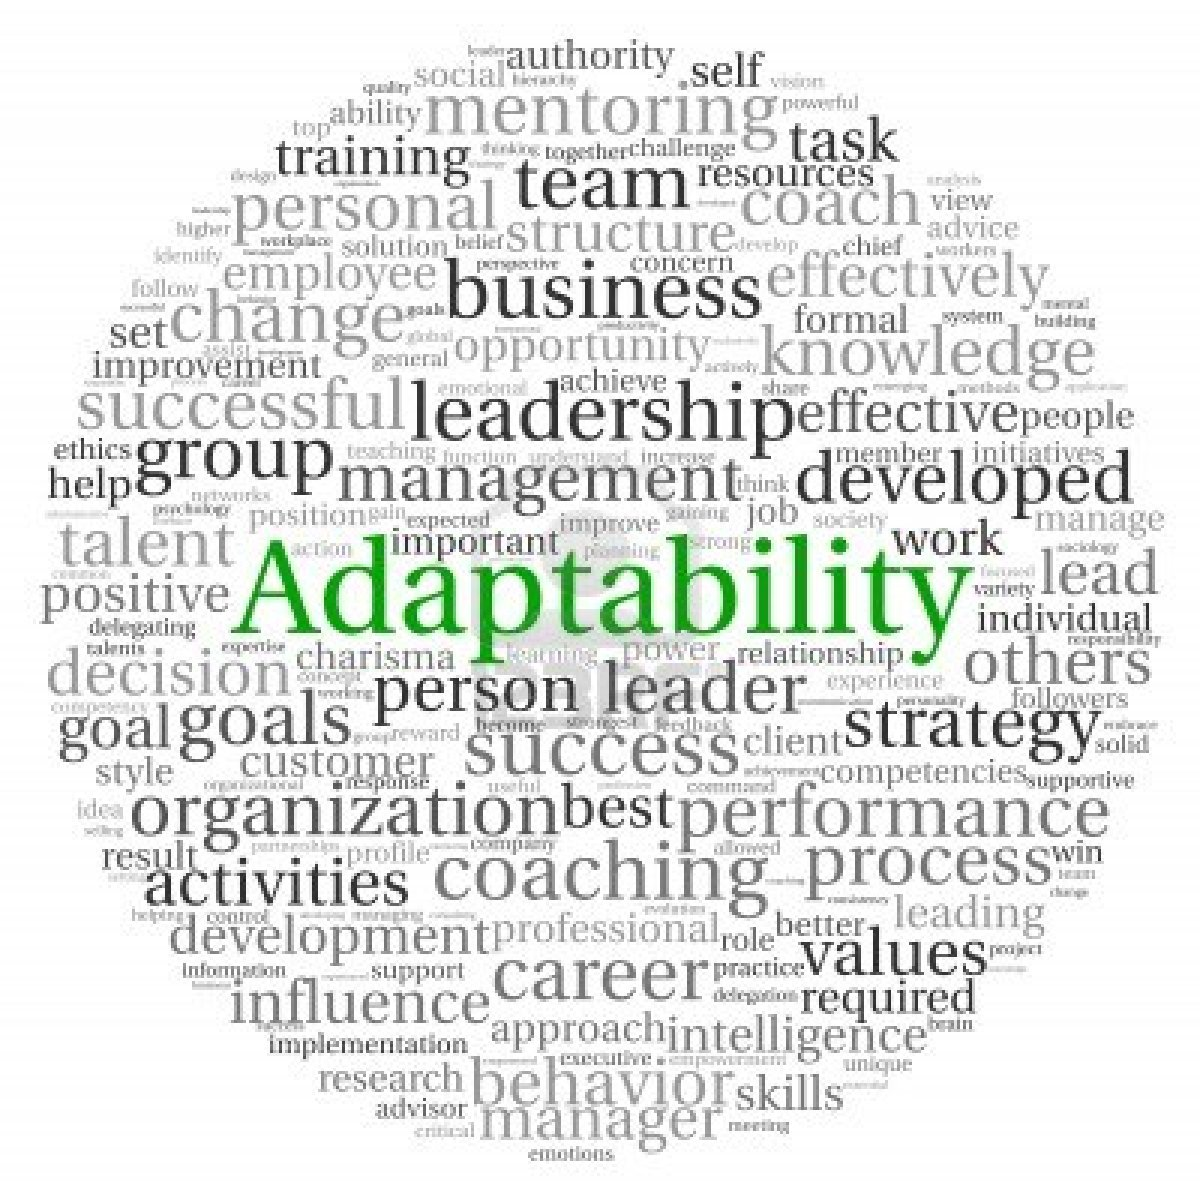 ismail it fundamental explain why adaptability and interpersonal ismail it fundamental explain why adaptability and interpersonal skills are important to an it professional